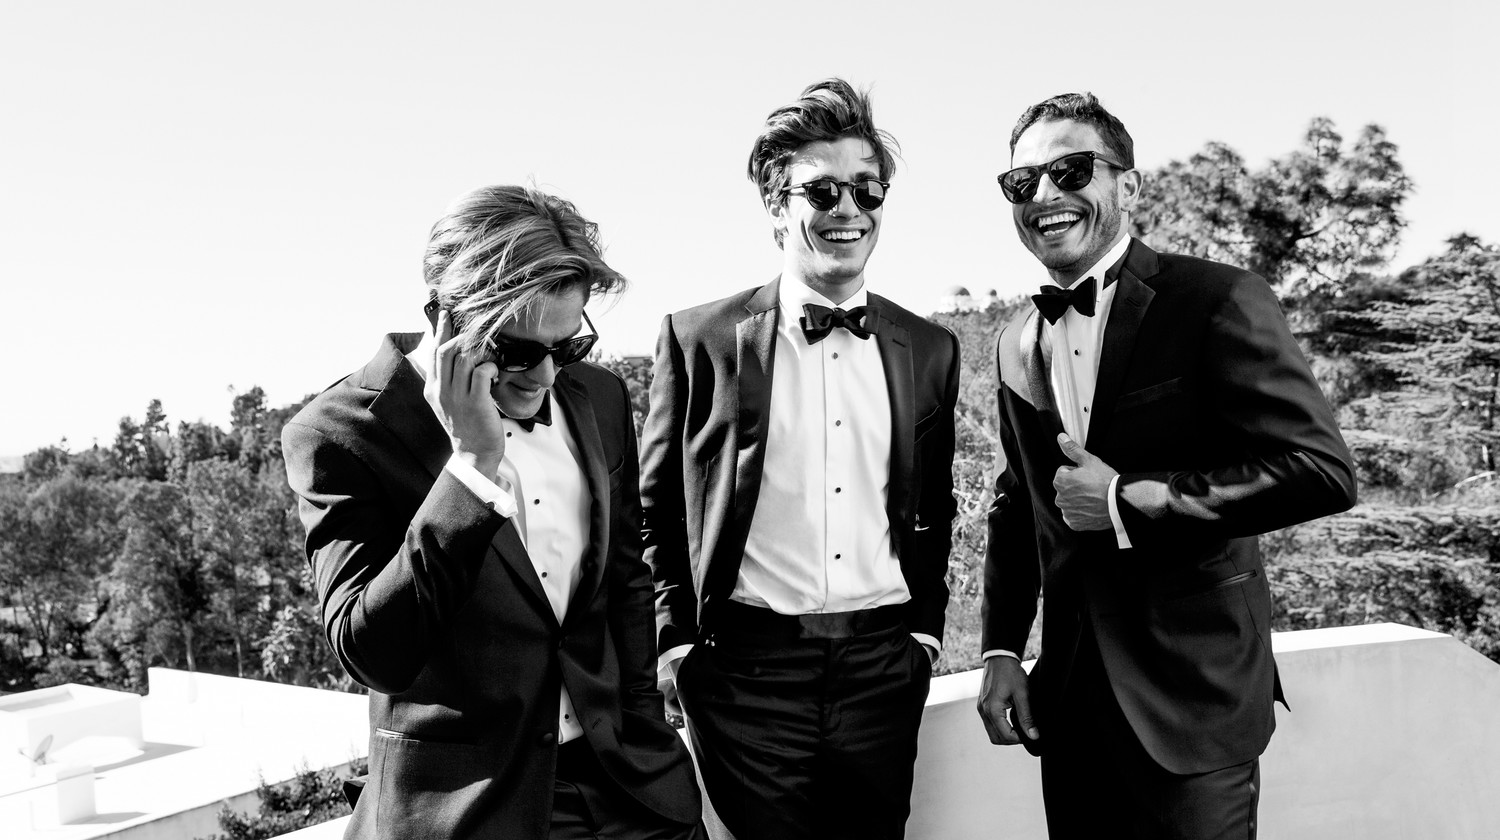 a479005a223 Tux Rental Service for Grooms and Groomsmen Helps Men Suit Up for a Wedding  Online